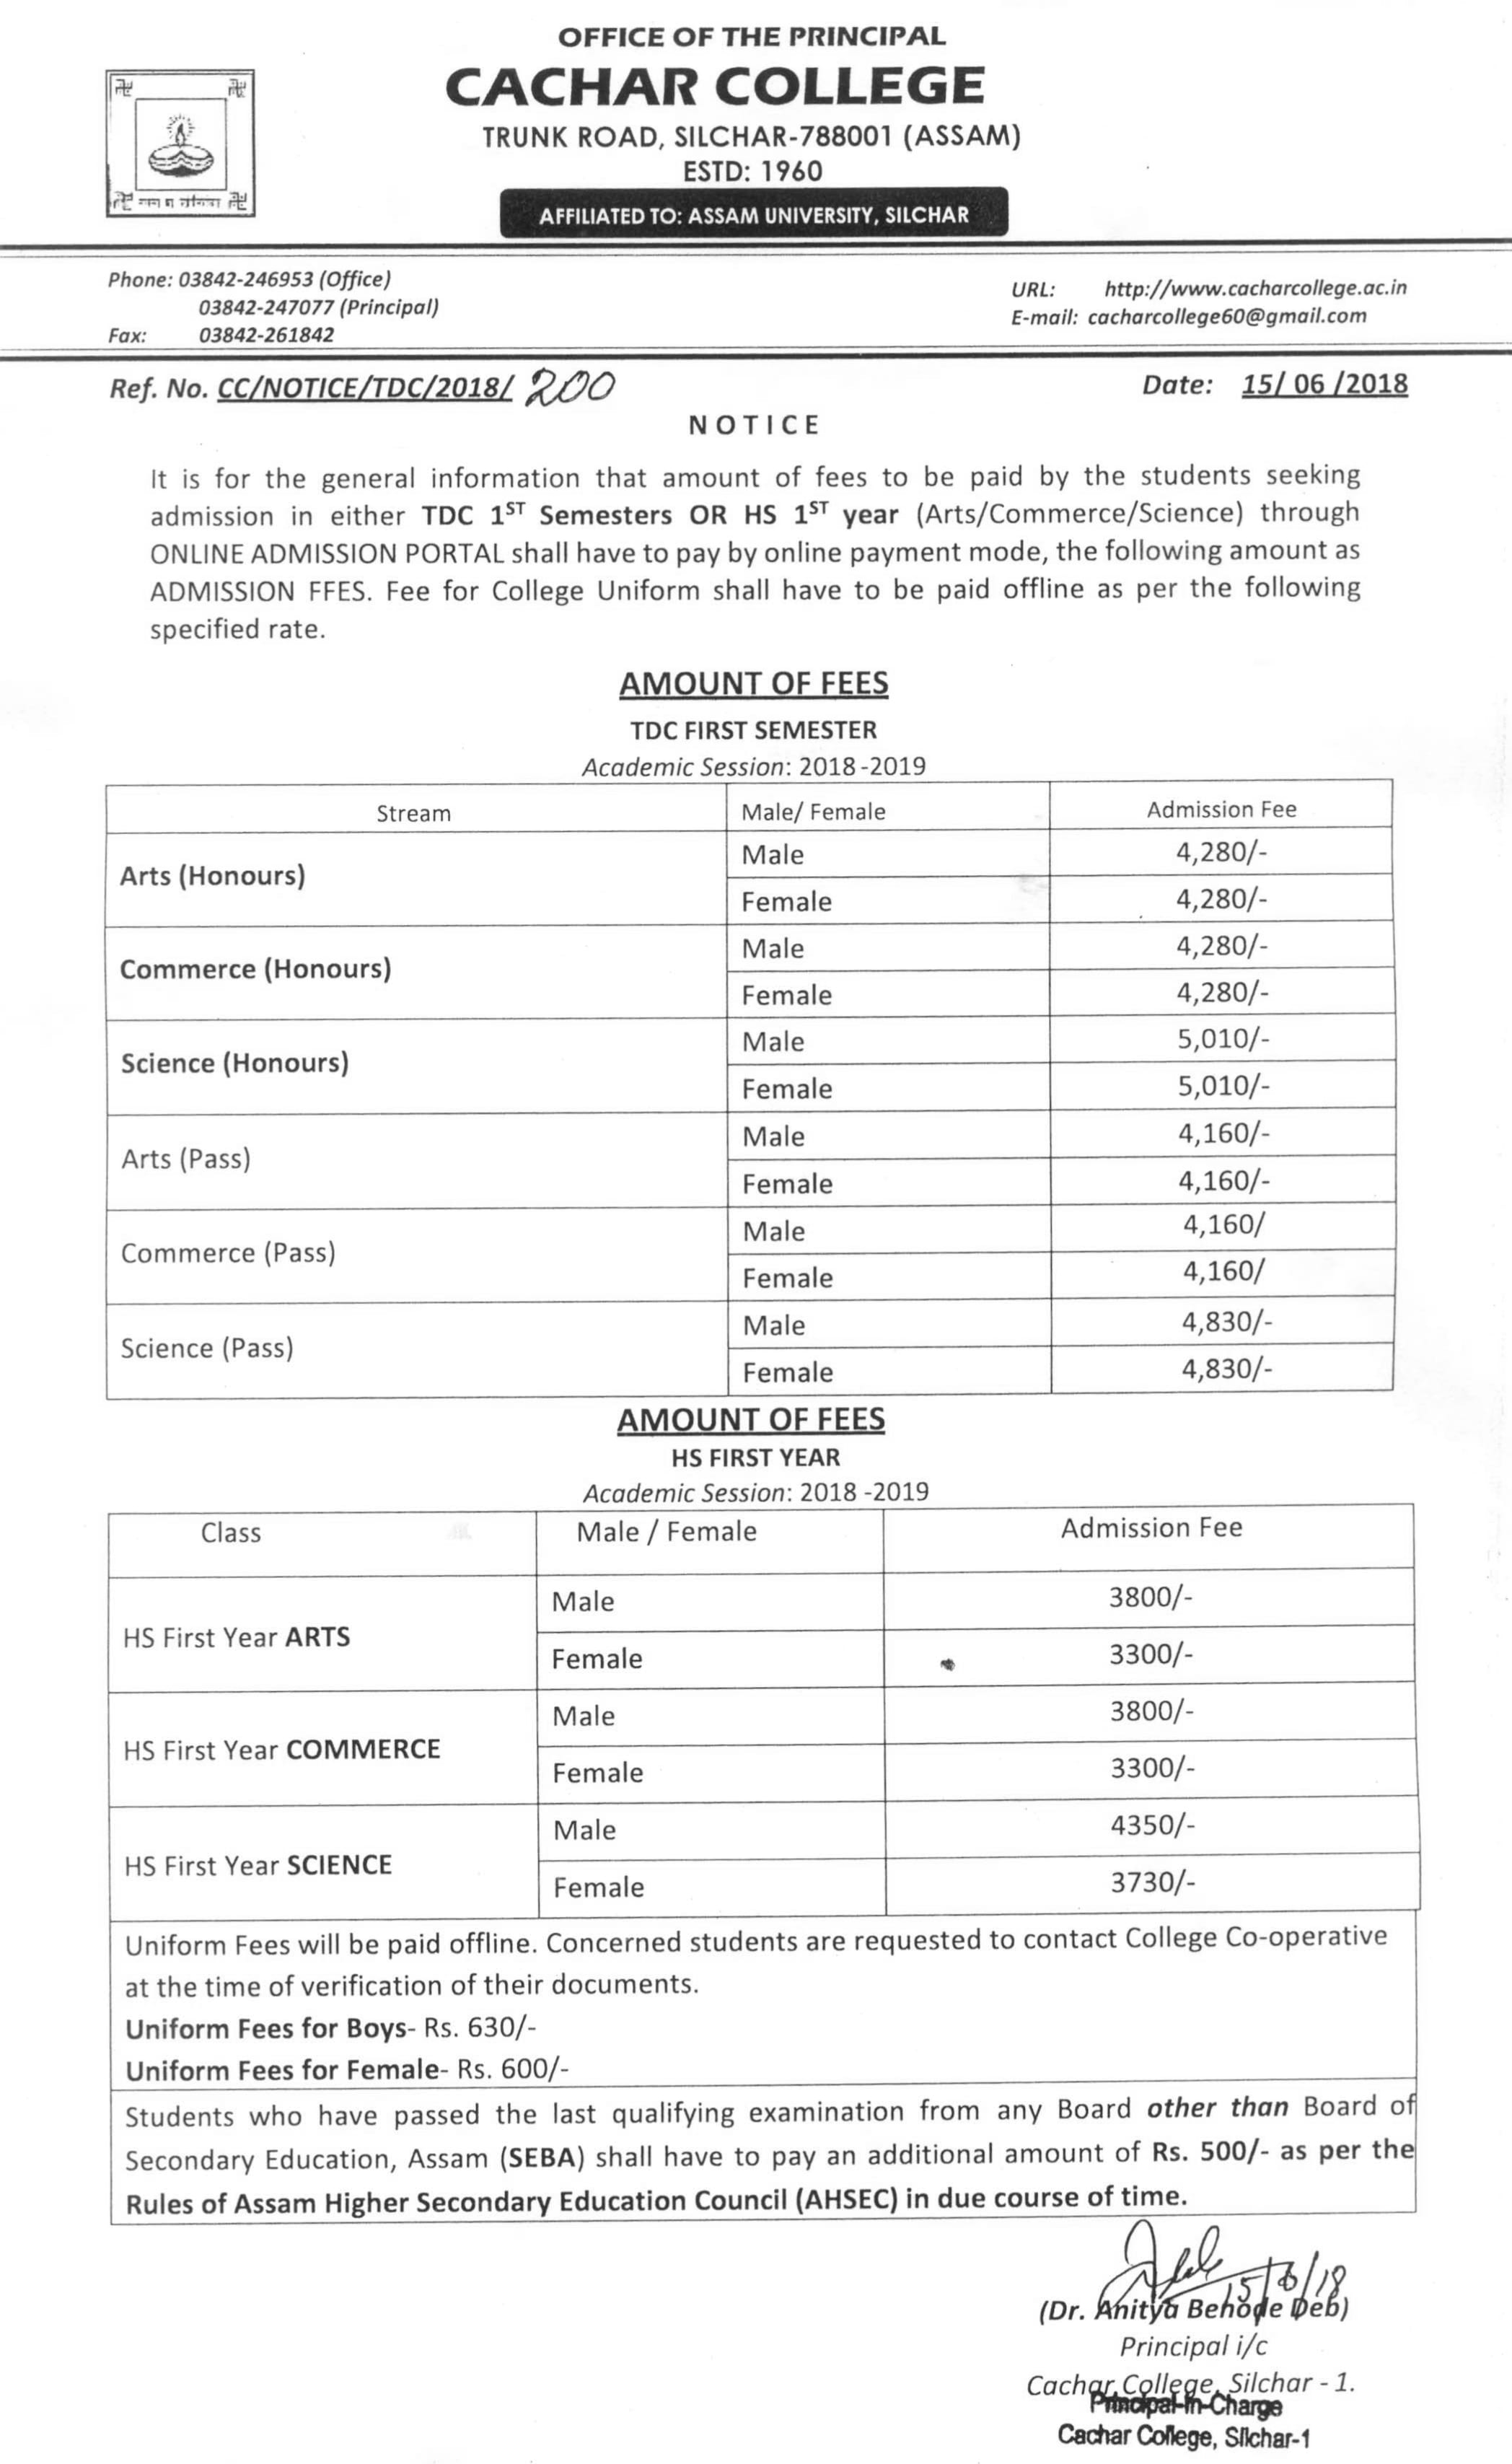 Cachar College Fee Structure